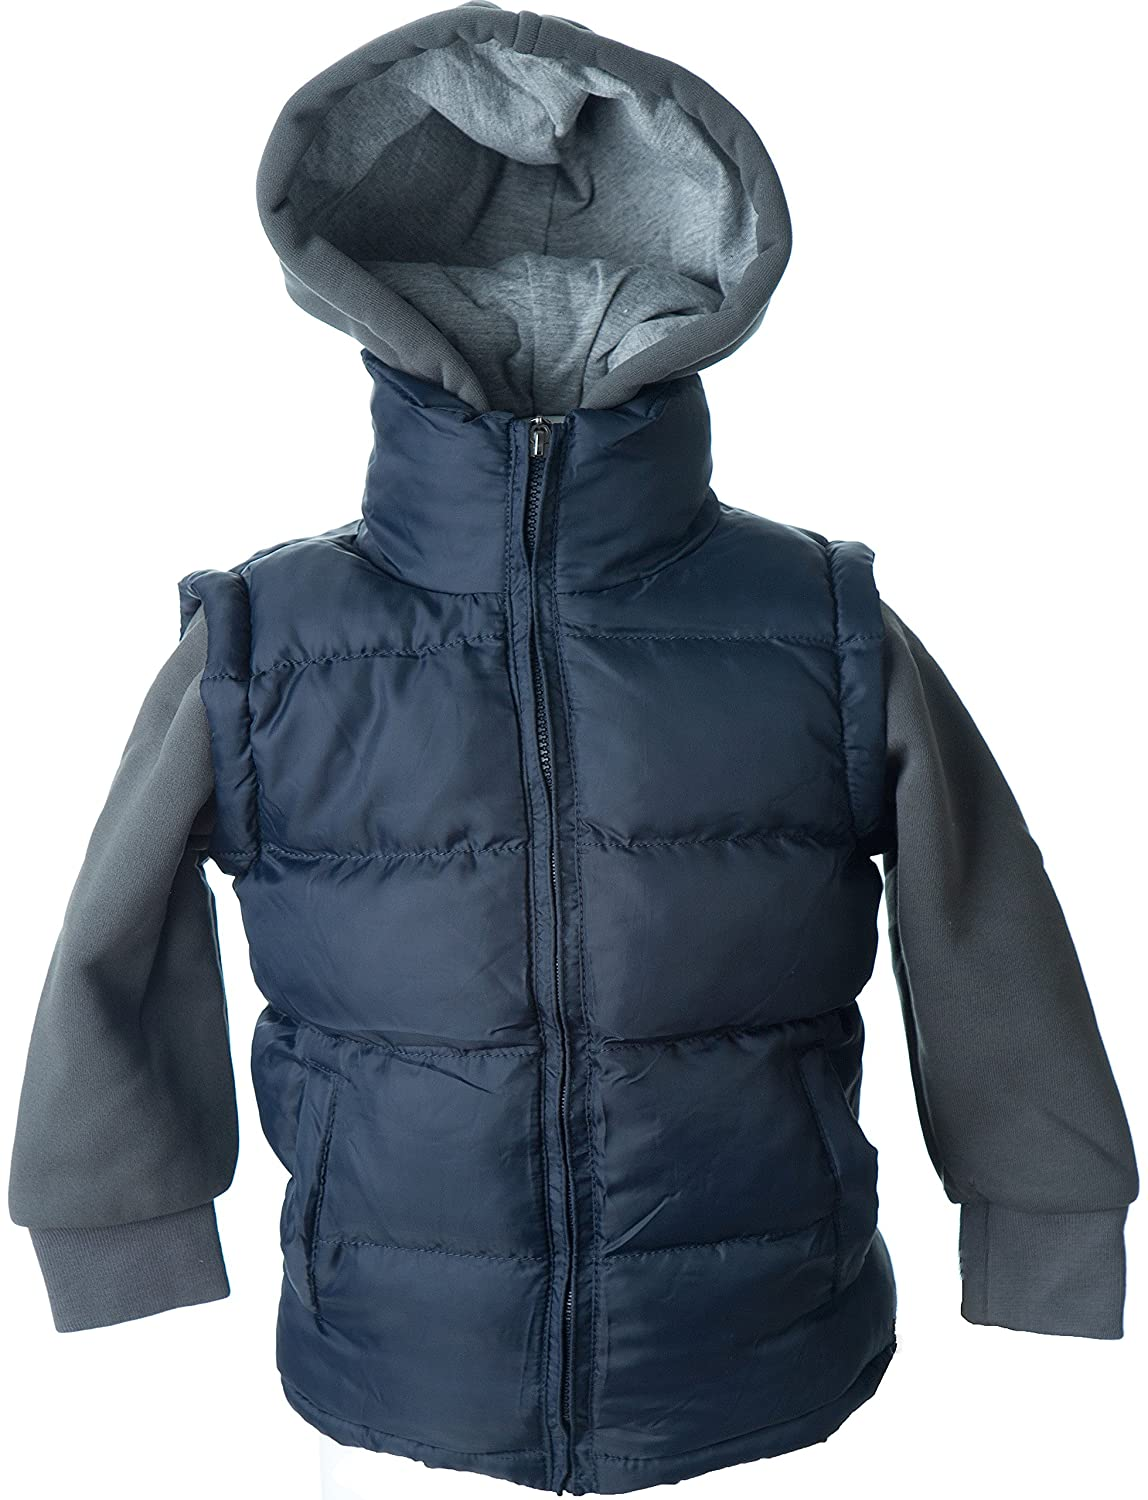 Lion Force Boys' Puffer Vest Jacket With Fleece Hood and Sleeves 1010B-BK-NV-GY